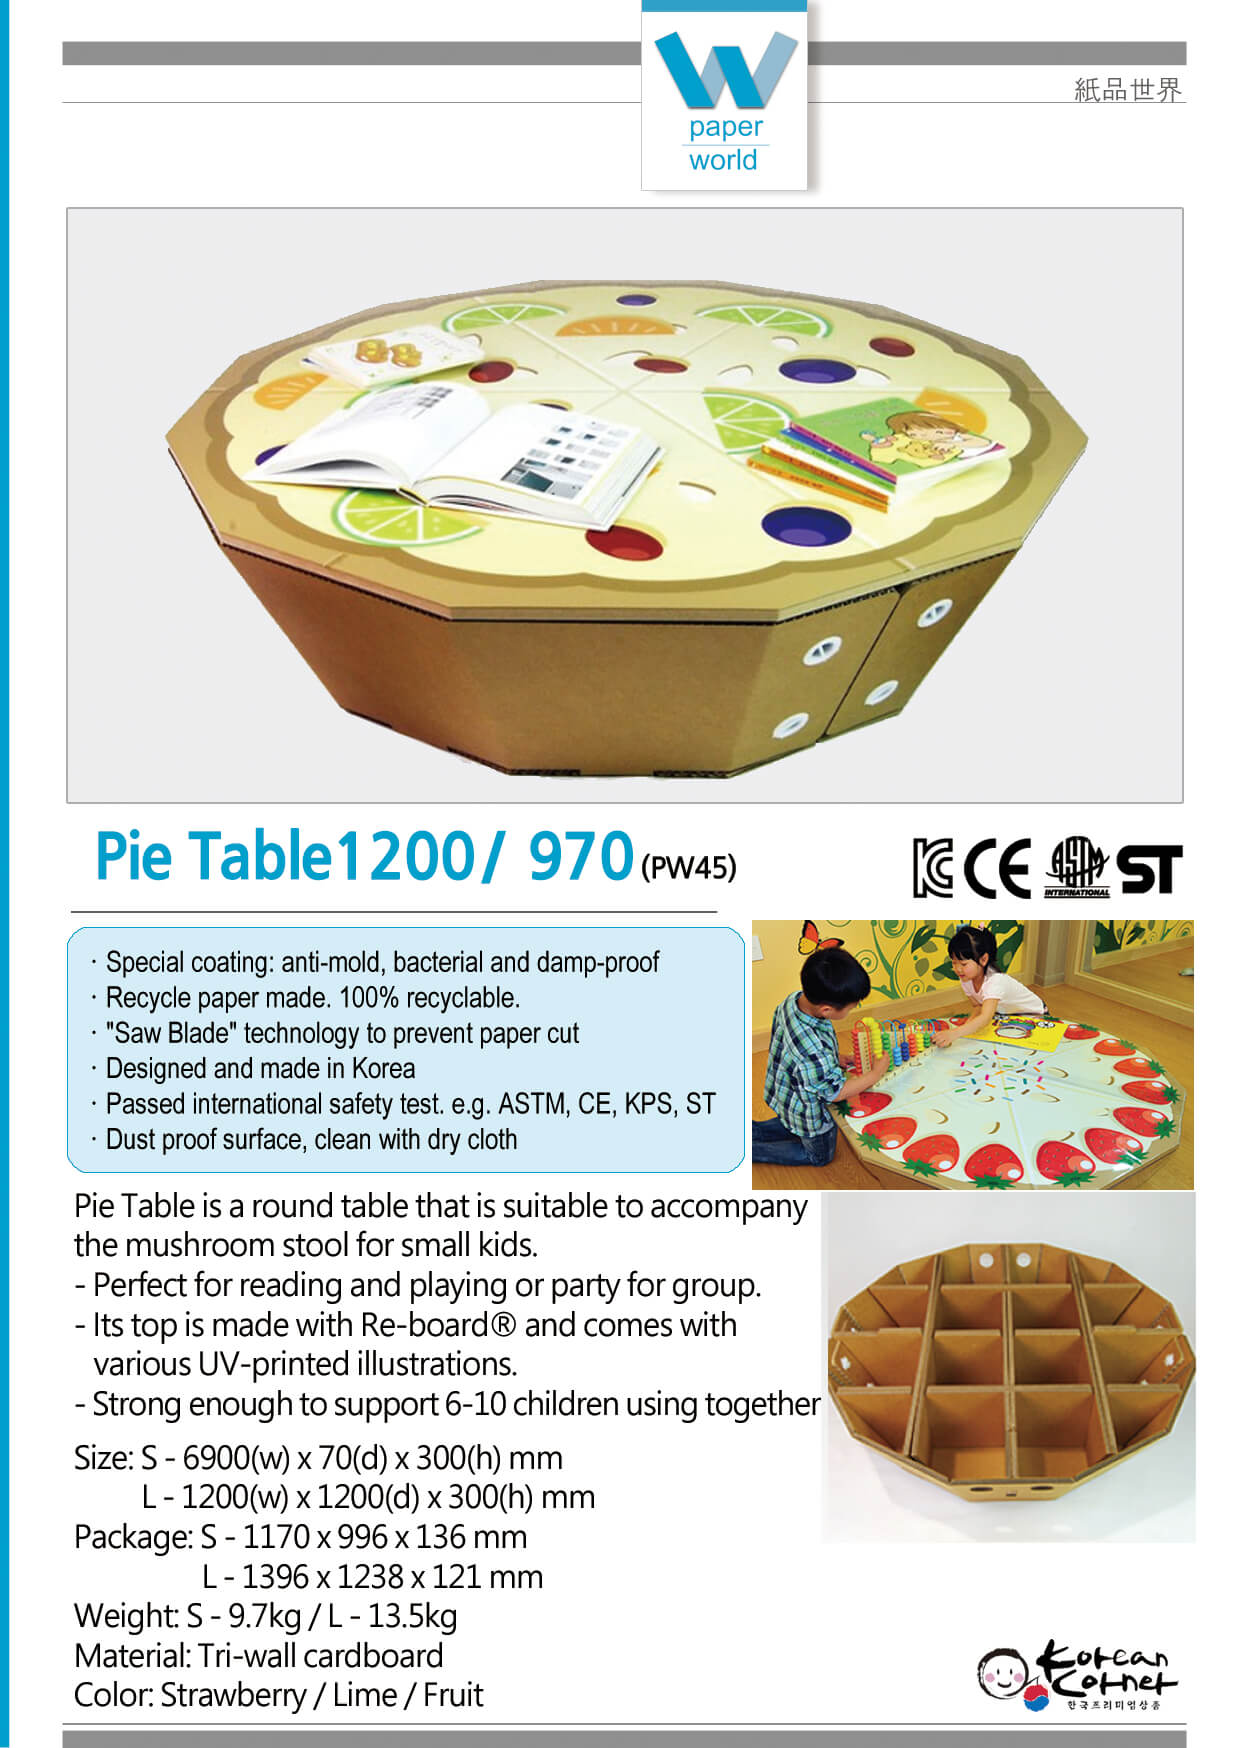 Pie Table